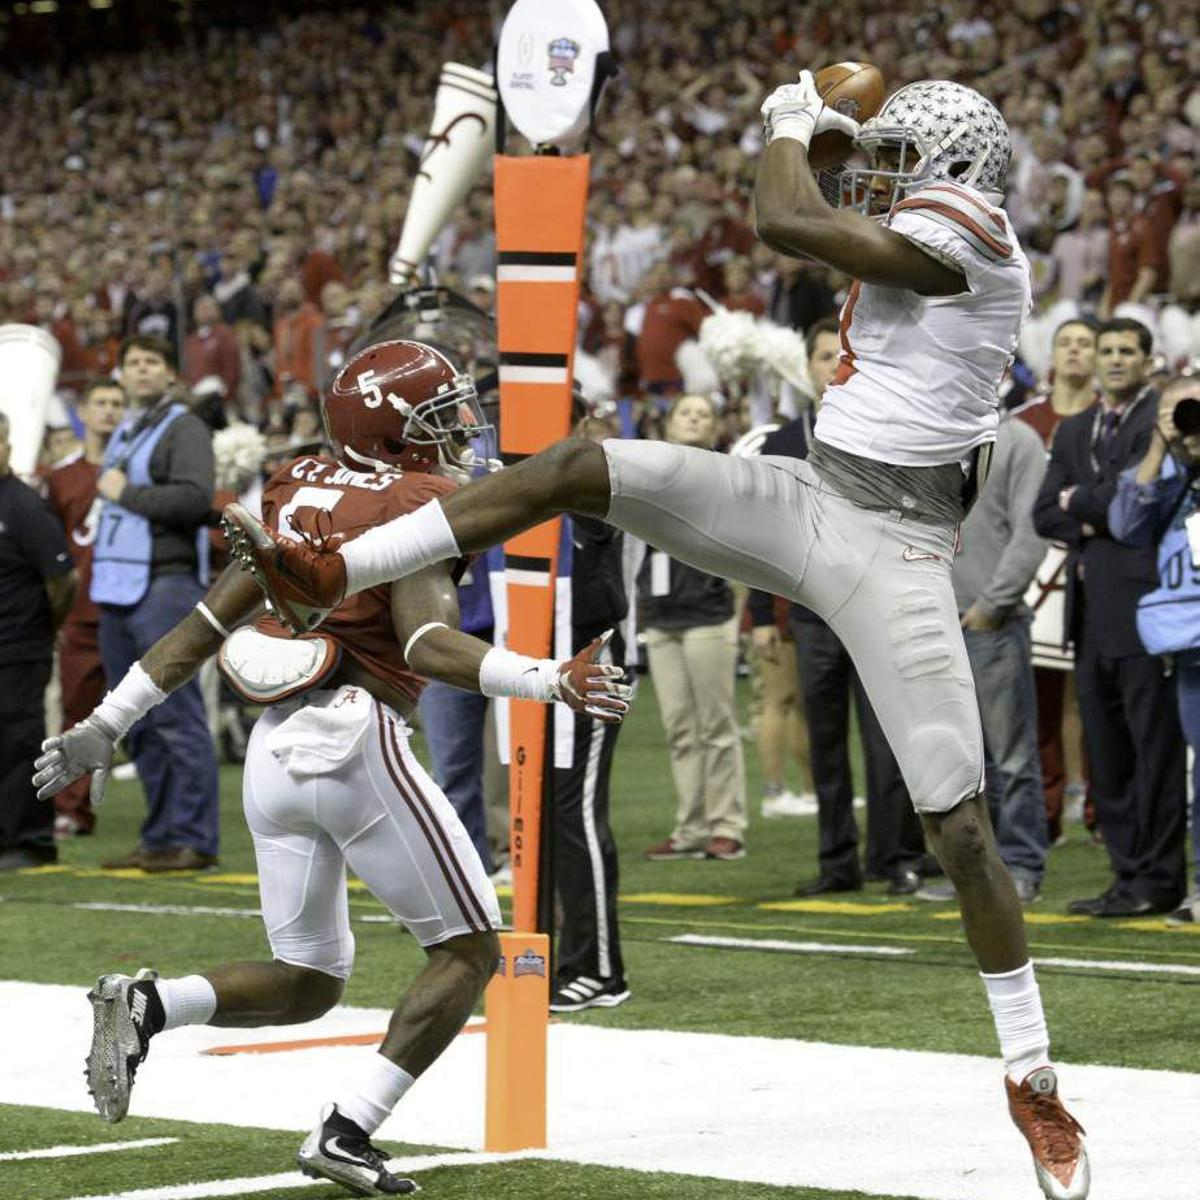 60c4774c4 I wouldn't have chosen anywhere else:' Ohio State's Michael Thomas ...